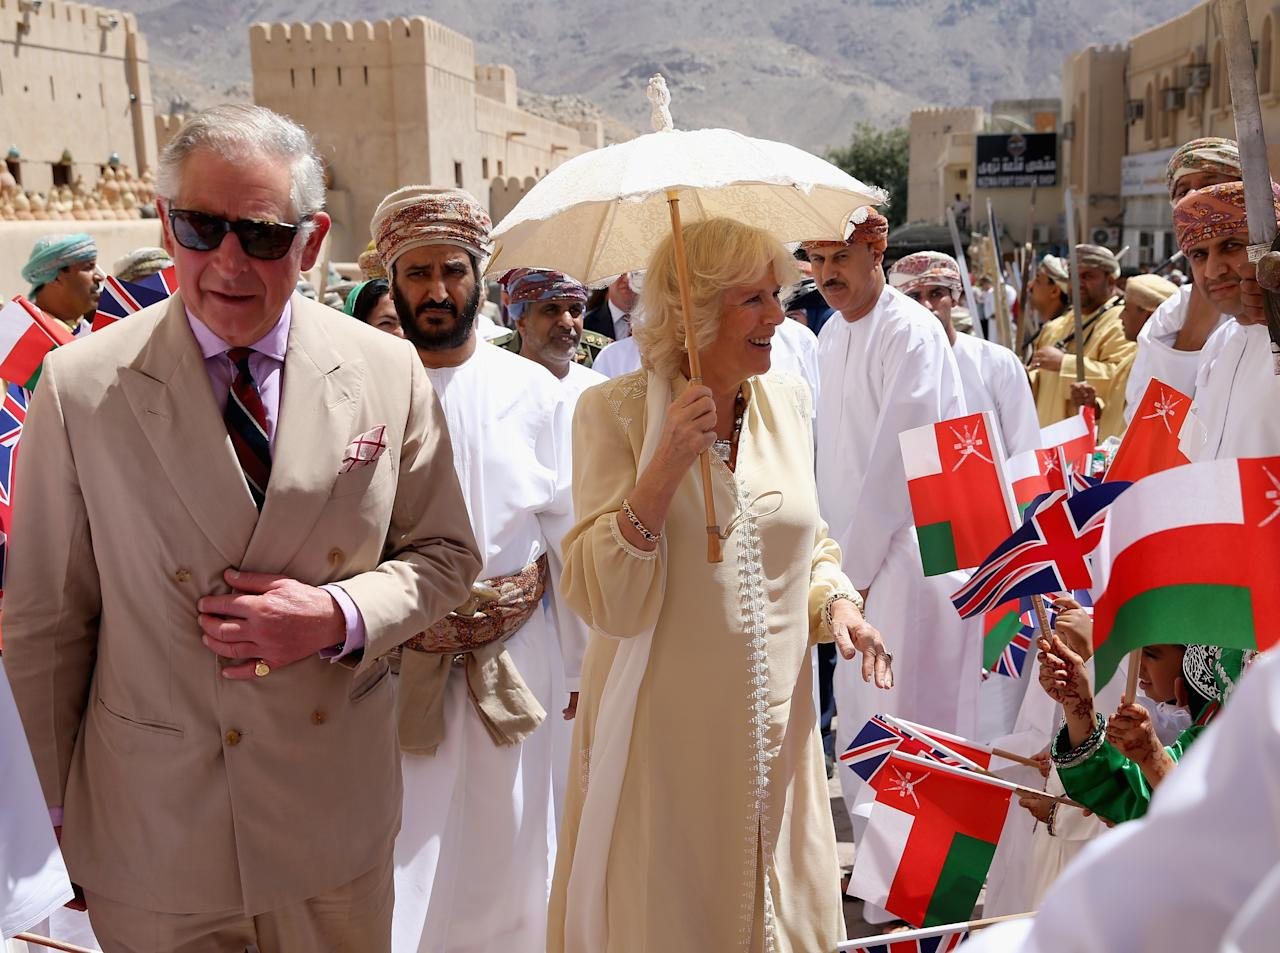 NIZWA, OMAN - MARCH 18:  Prince Charles, Prince of Wales and Camilla, Duchess of Cornwall visit Nizwa Fort on the eighth day of a tour of the Middle East on March 18, 2013 in Nizwa, Oman. The Royal couple are on the fourth and final leg of a tour of the Middle East taking in Jordan, Qatar, Saudia Arabia and Oman.  (Photo by Chris Jackson/Getty Images)